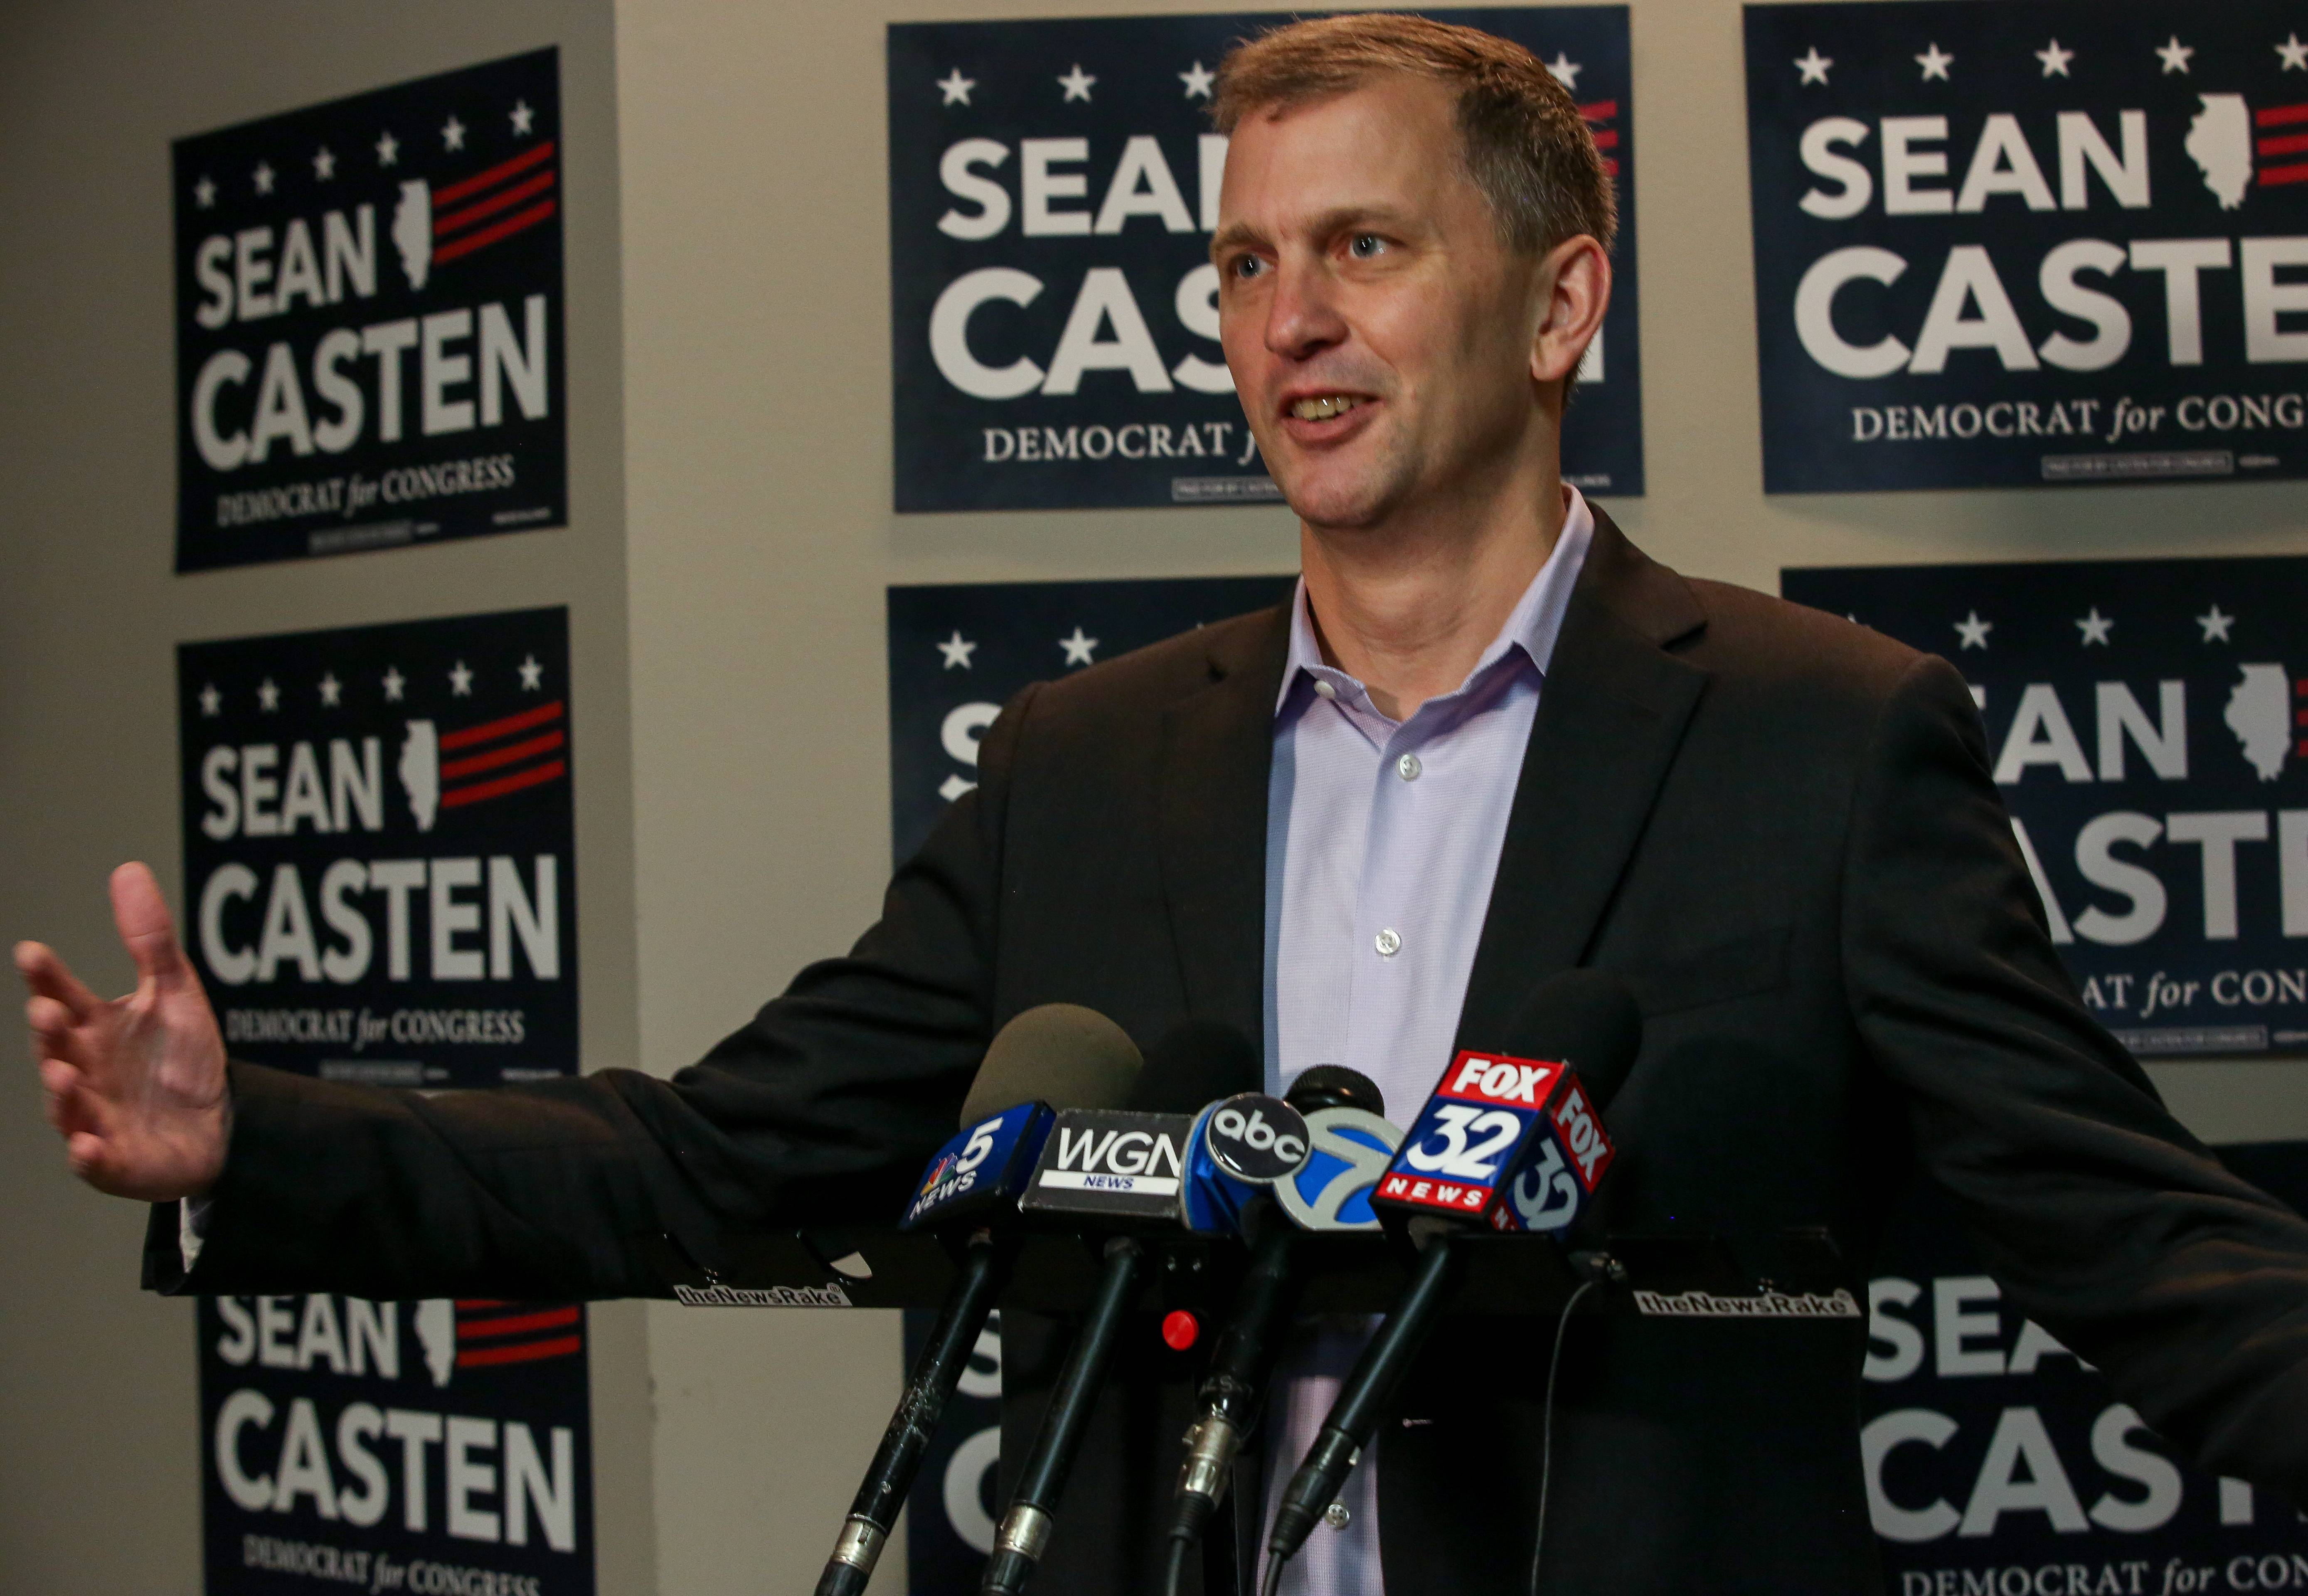 Democrat Sean Casten says his job now, after winning a U.S. Congressional election in the 6th District, is to represent constituent interests in Washington, learn to govern and advance policy on issues such as climate change and health care.